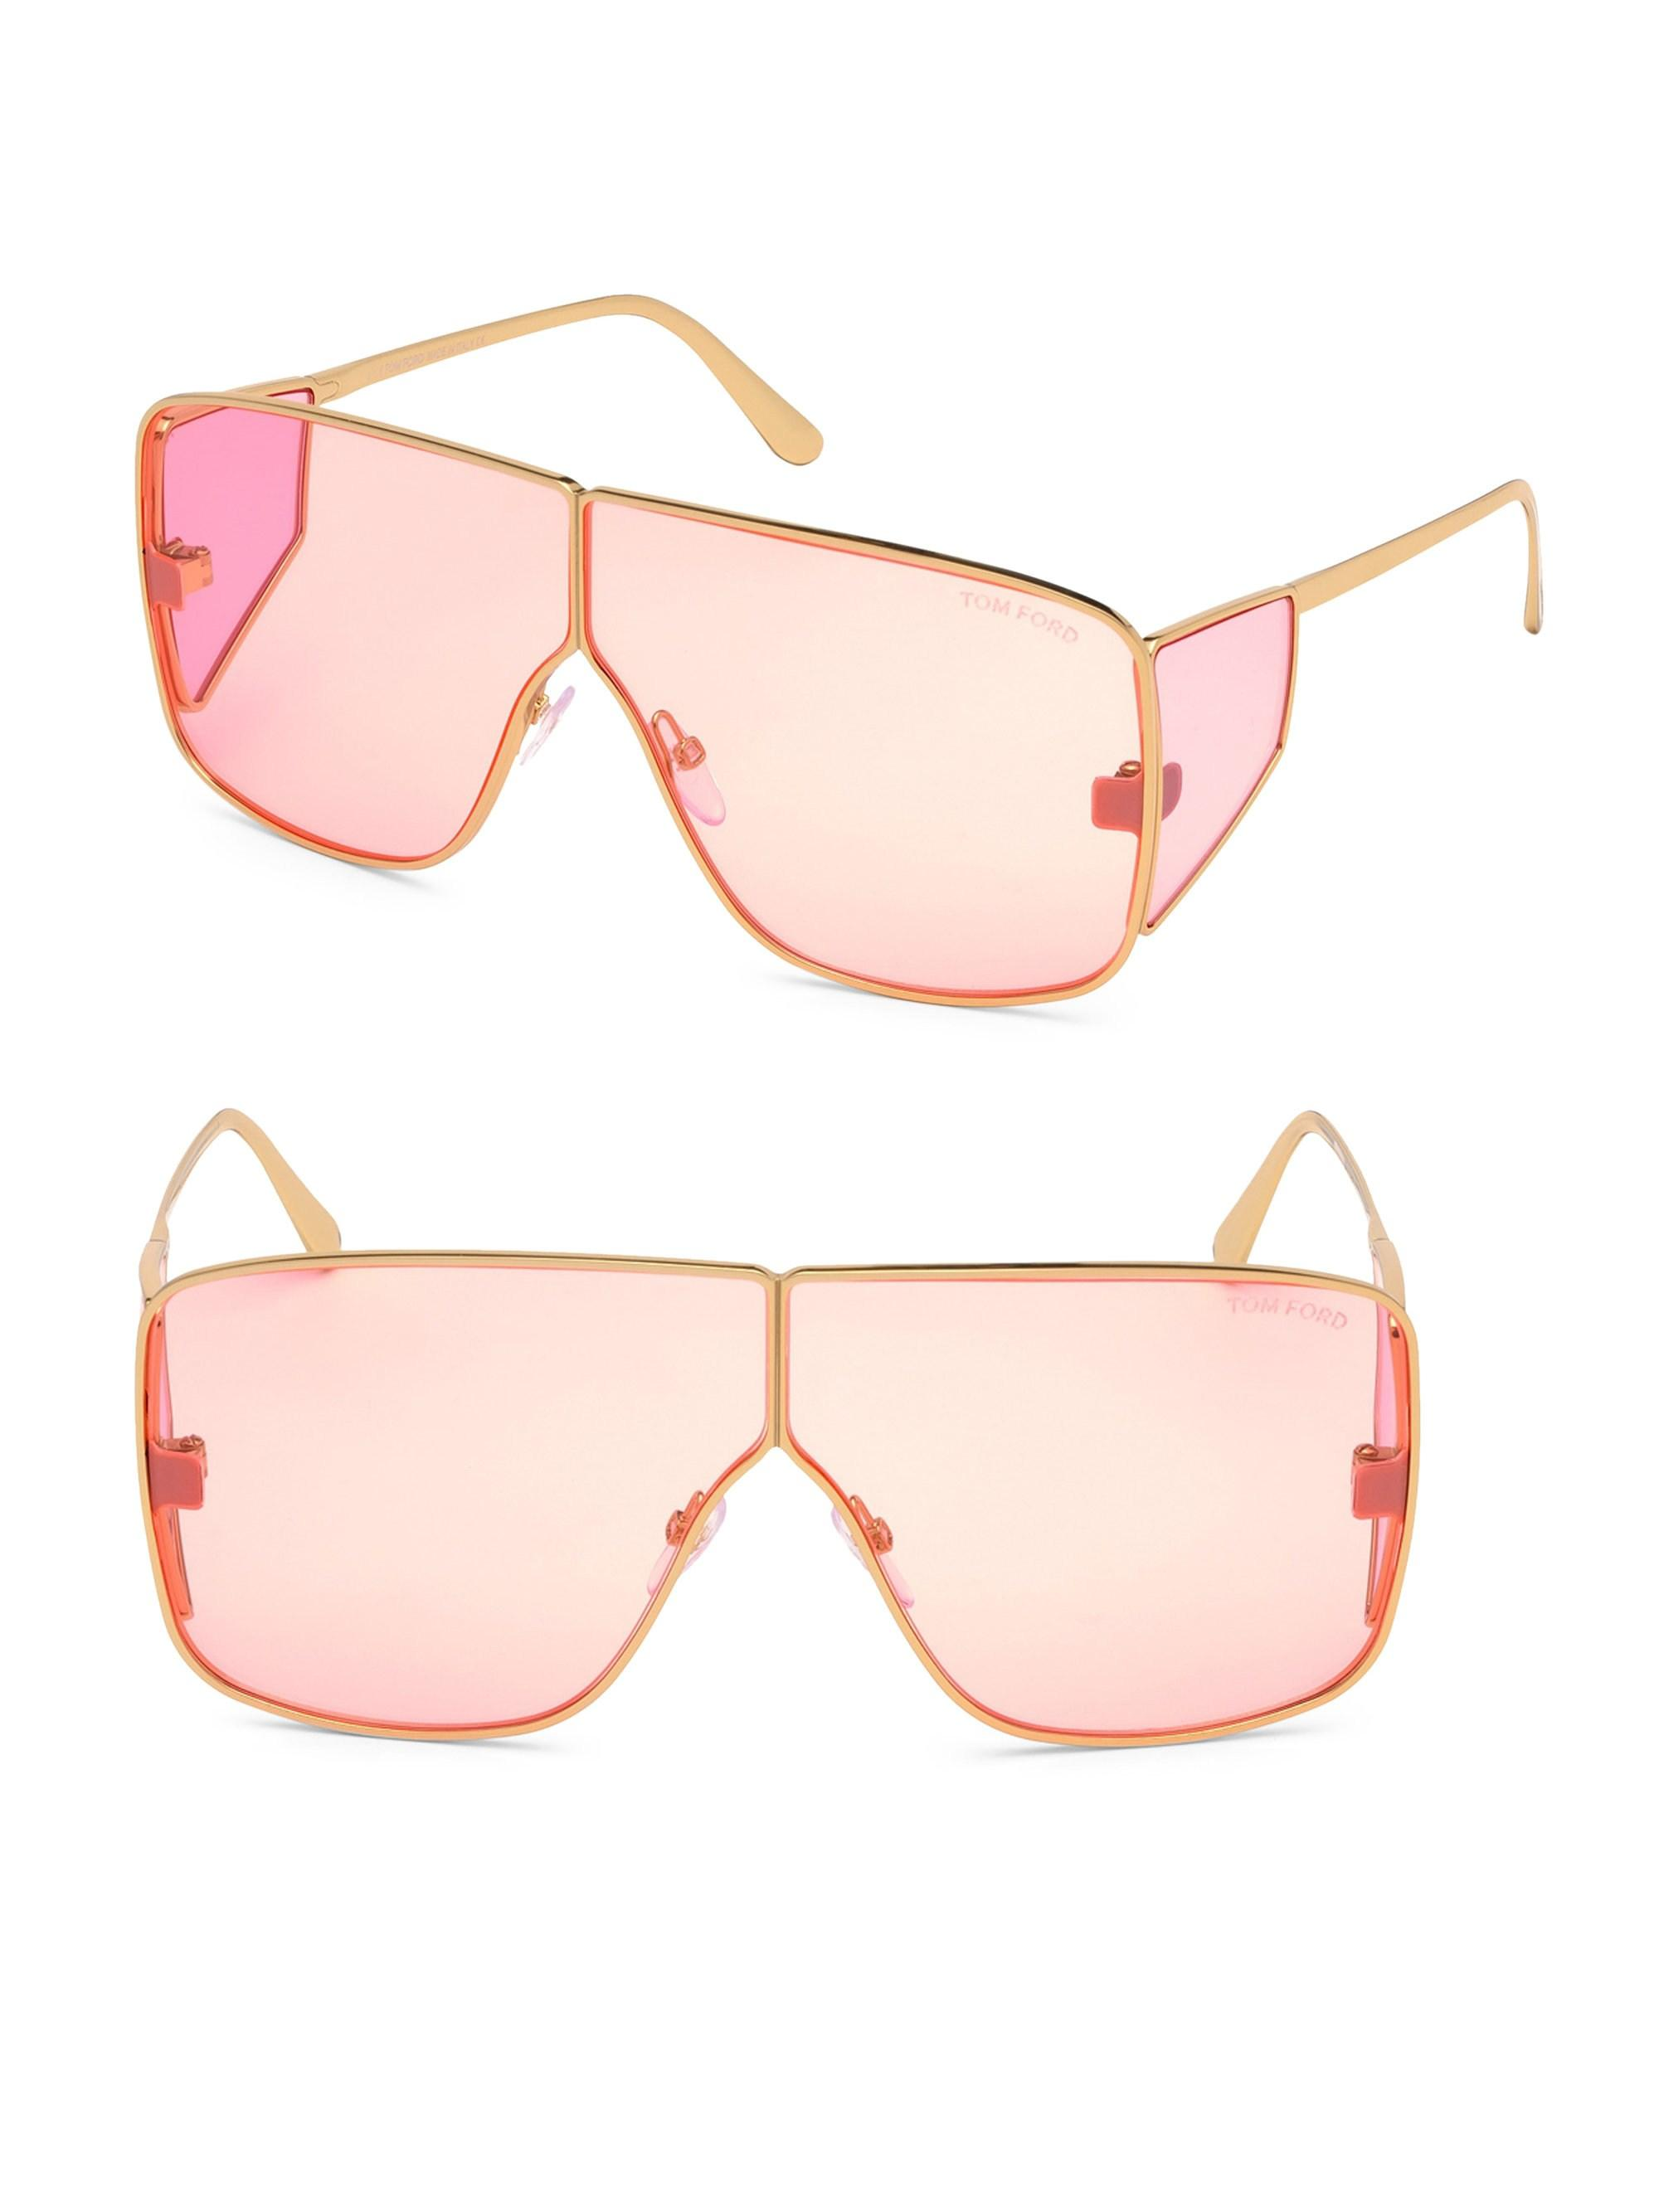 850a7865aa3cb Tom Ford Spectator 72mm Shield Sunglasses in Pink - Lyst